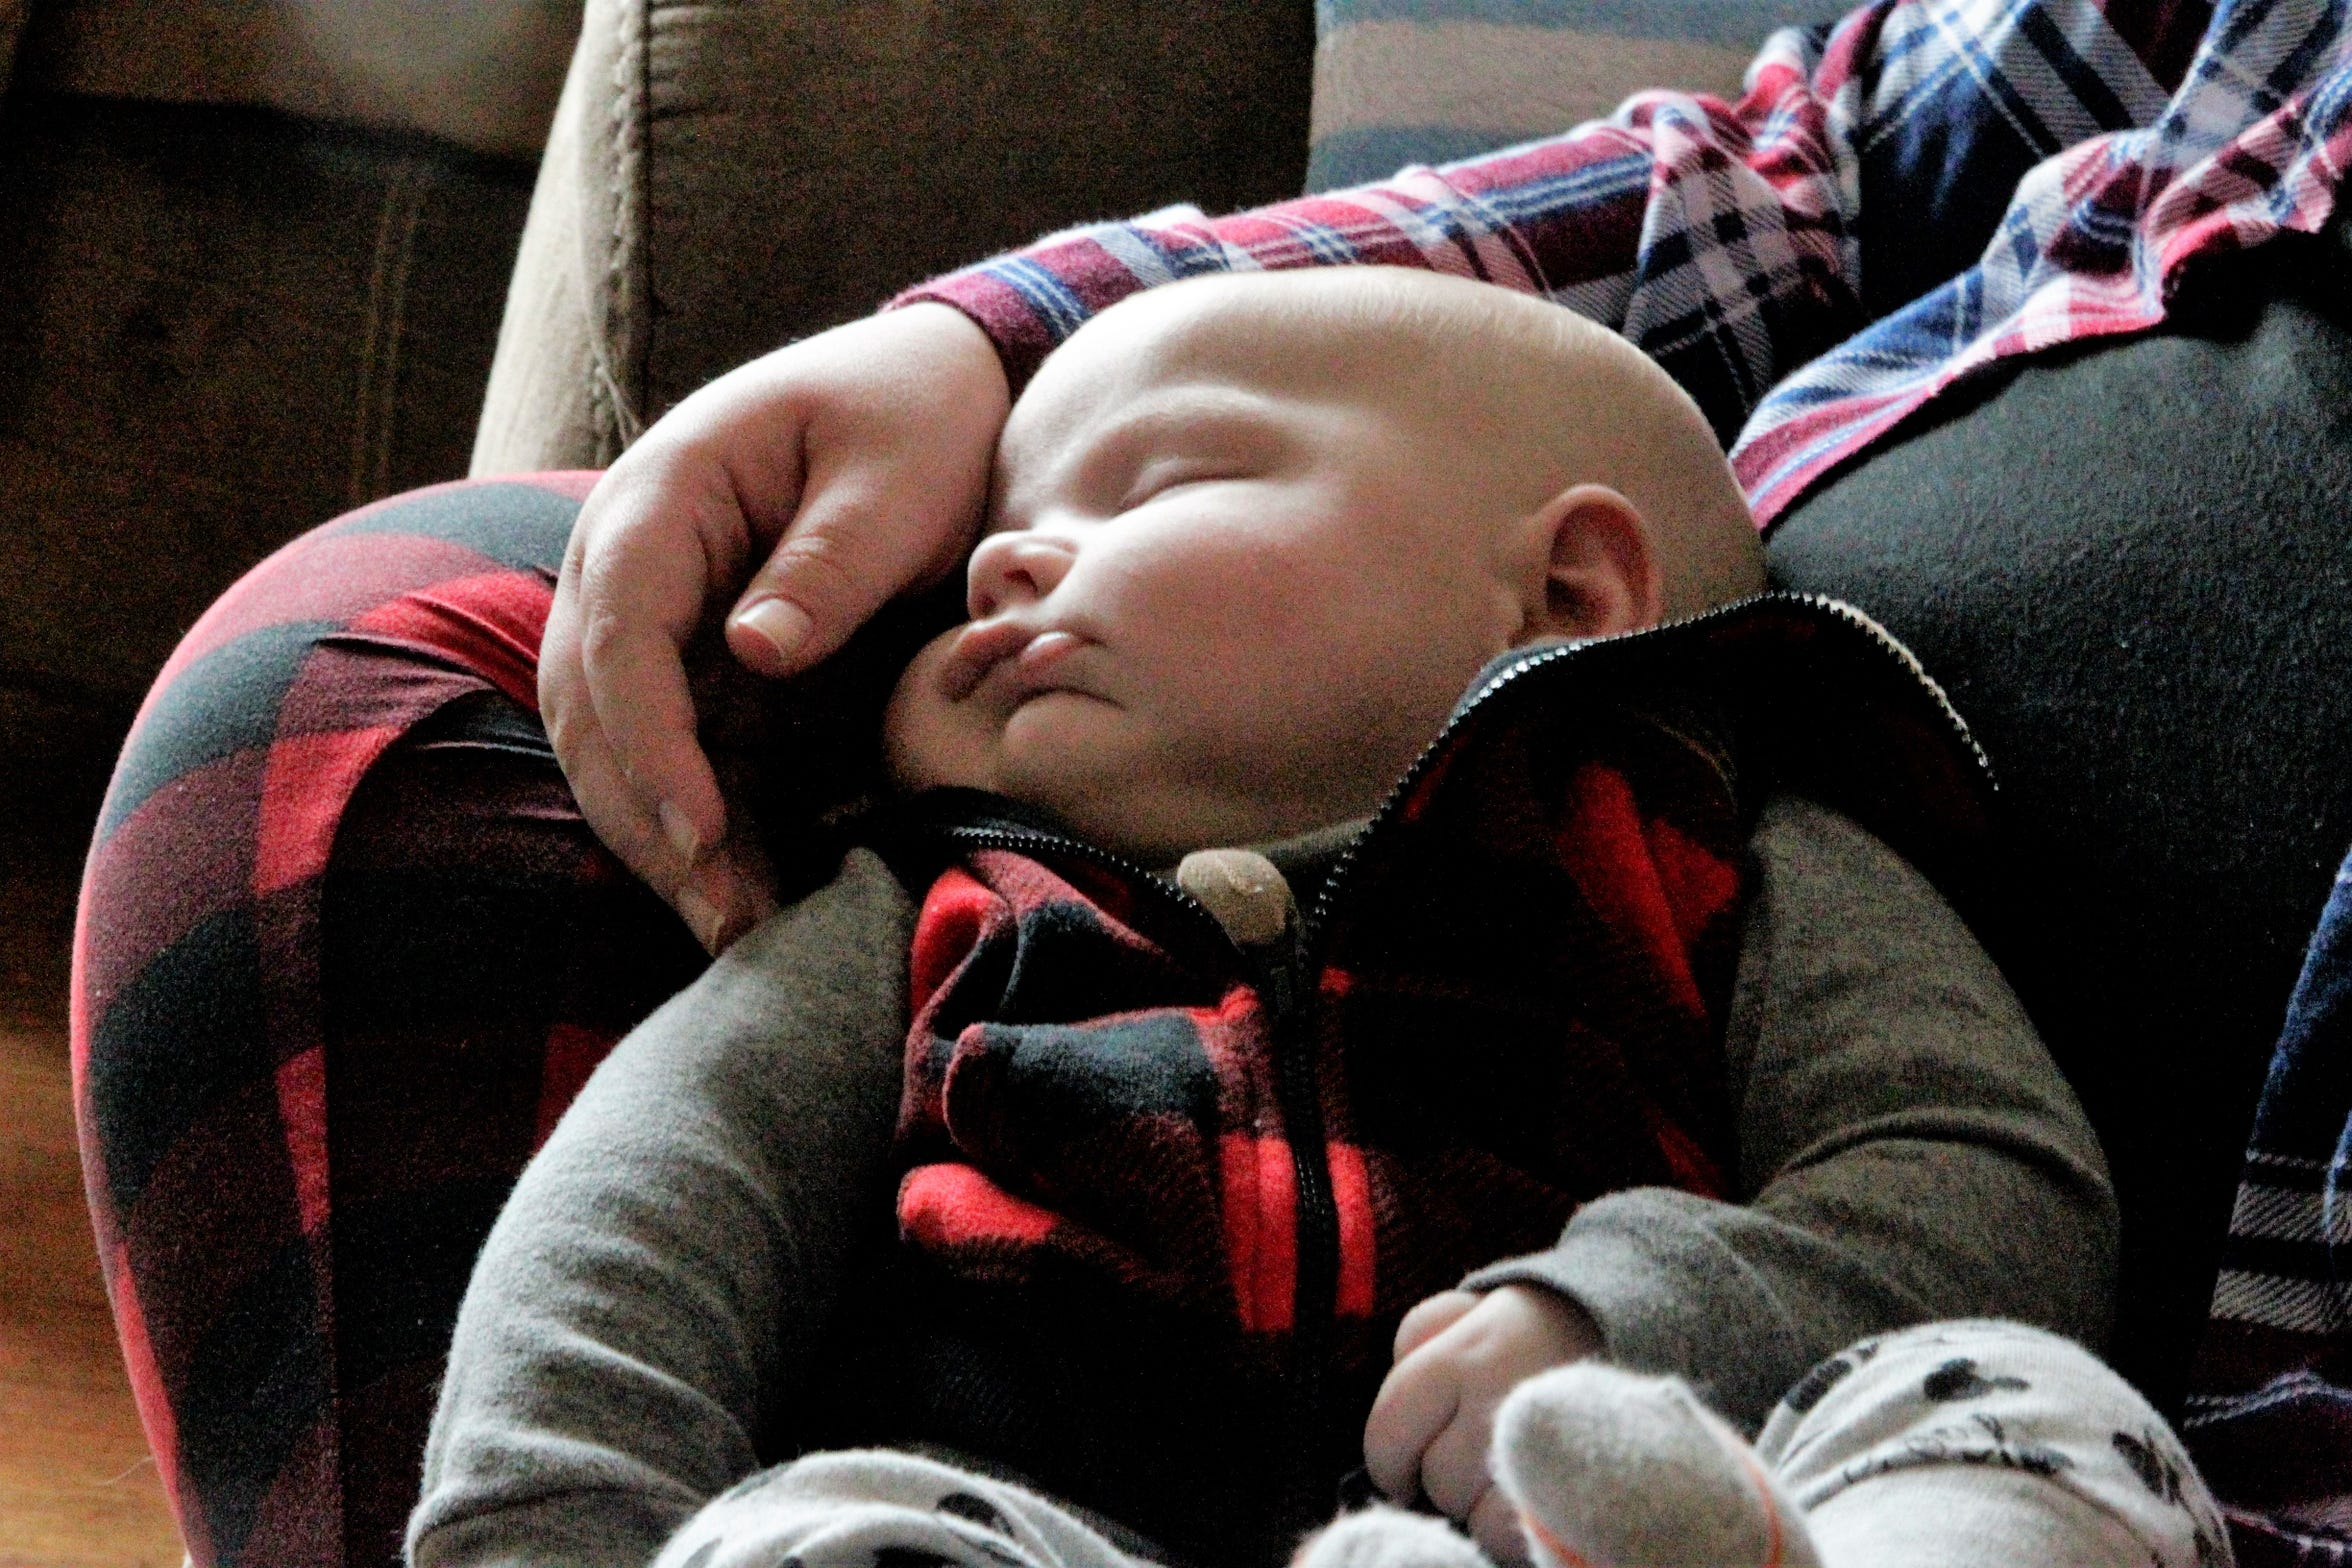 Three month old Austin Glines rests nestled into his mother Heather Glines at their home in Ladoga, Indiana on Tuesday, February 5, 2019.